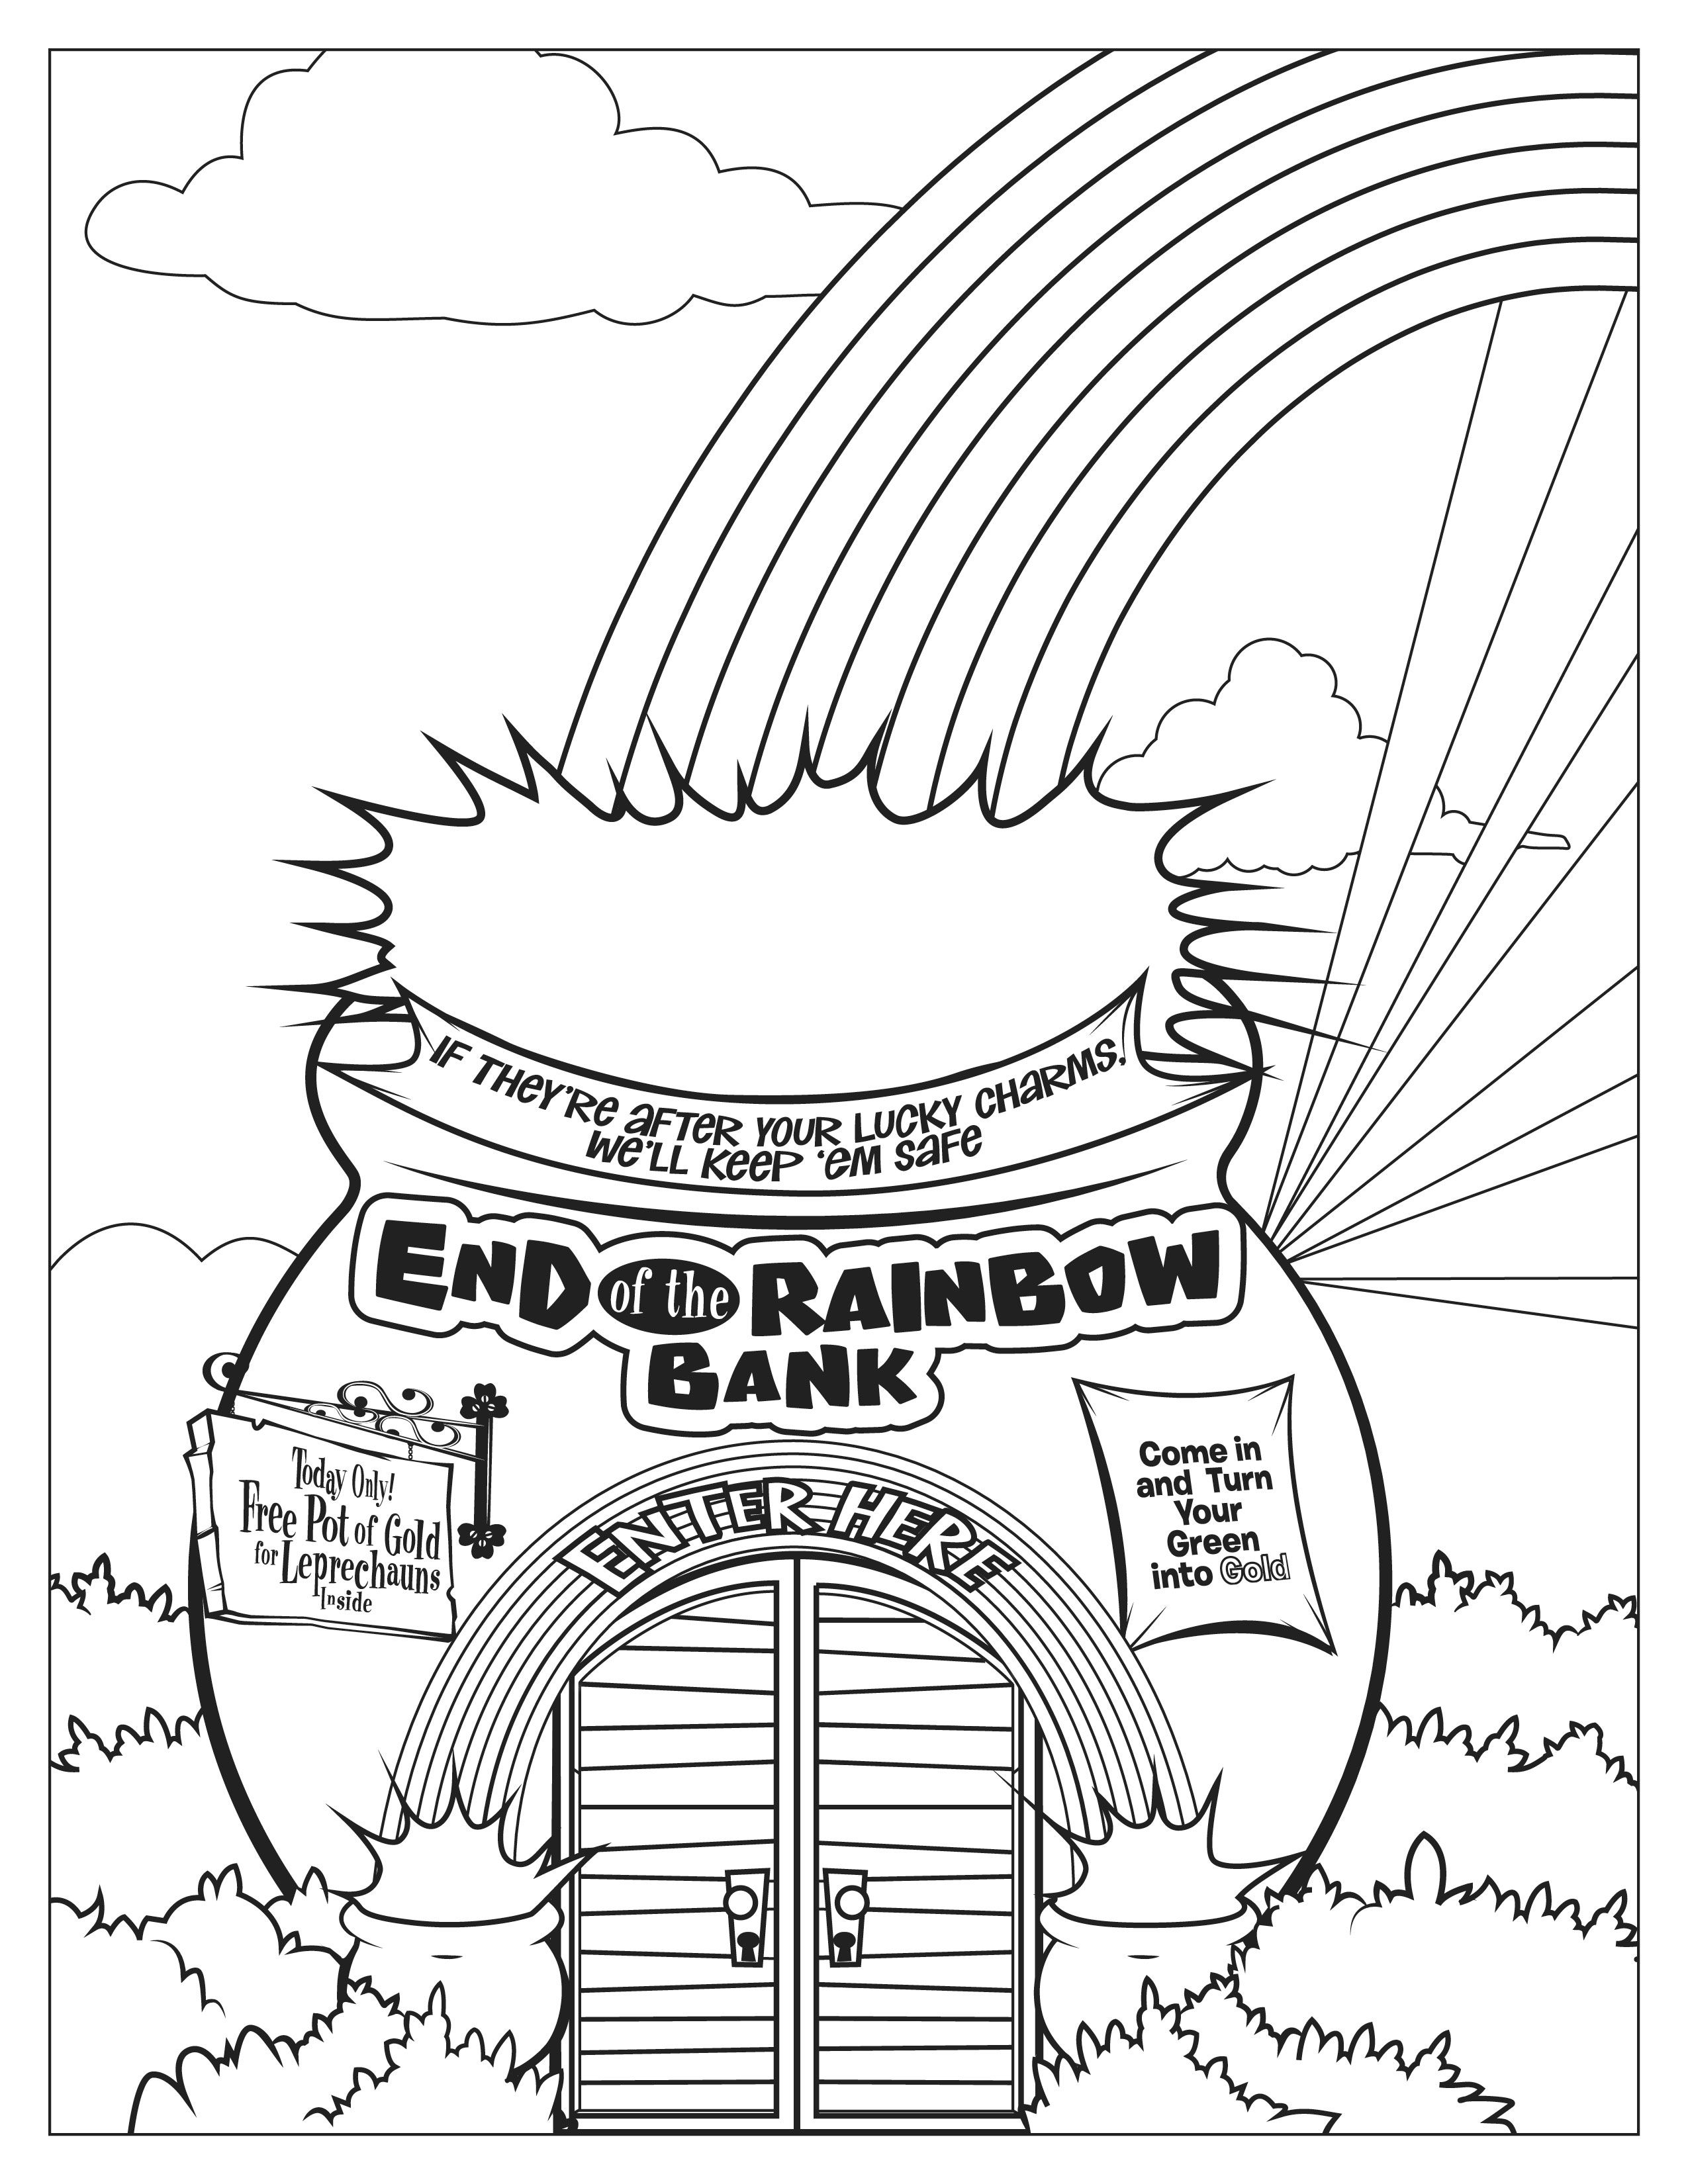 Lucky Charms End Of The Rainbow Bank Coloring Page Coloring Worksheets For Kindergarten Kindergarten Worksheets Kindergarten